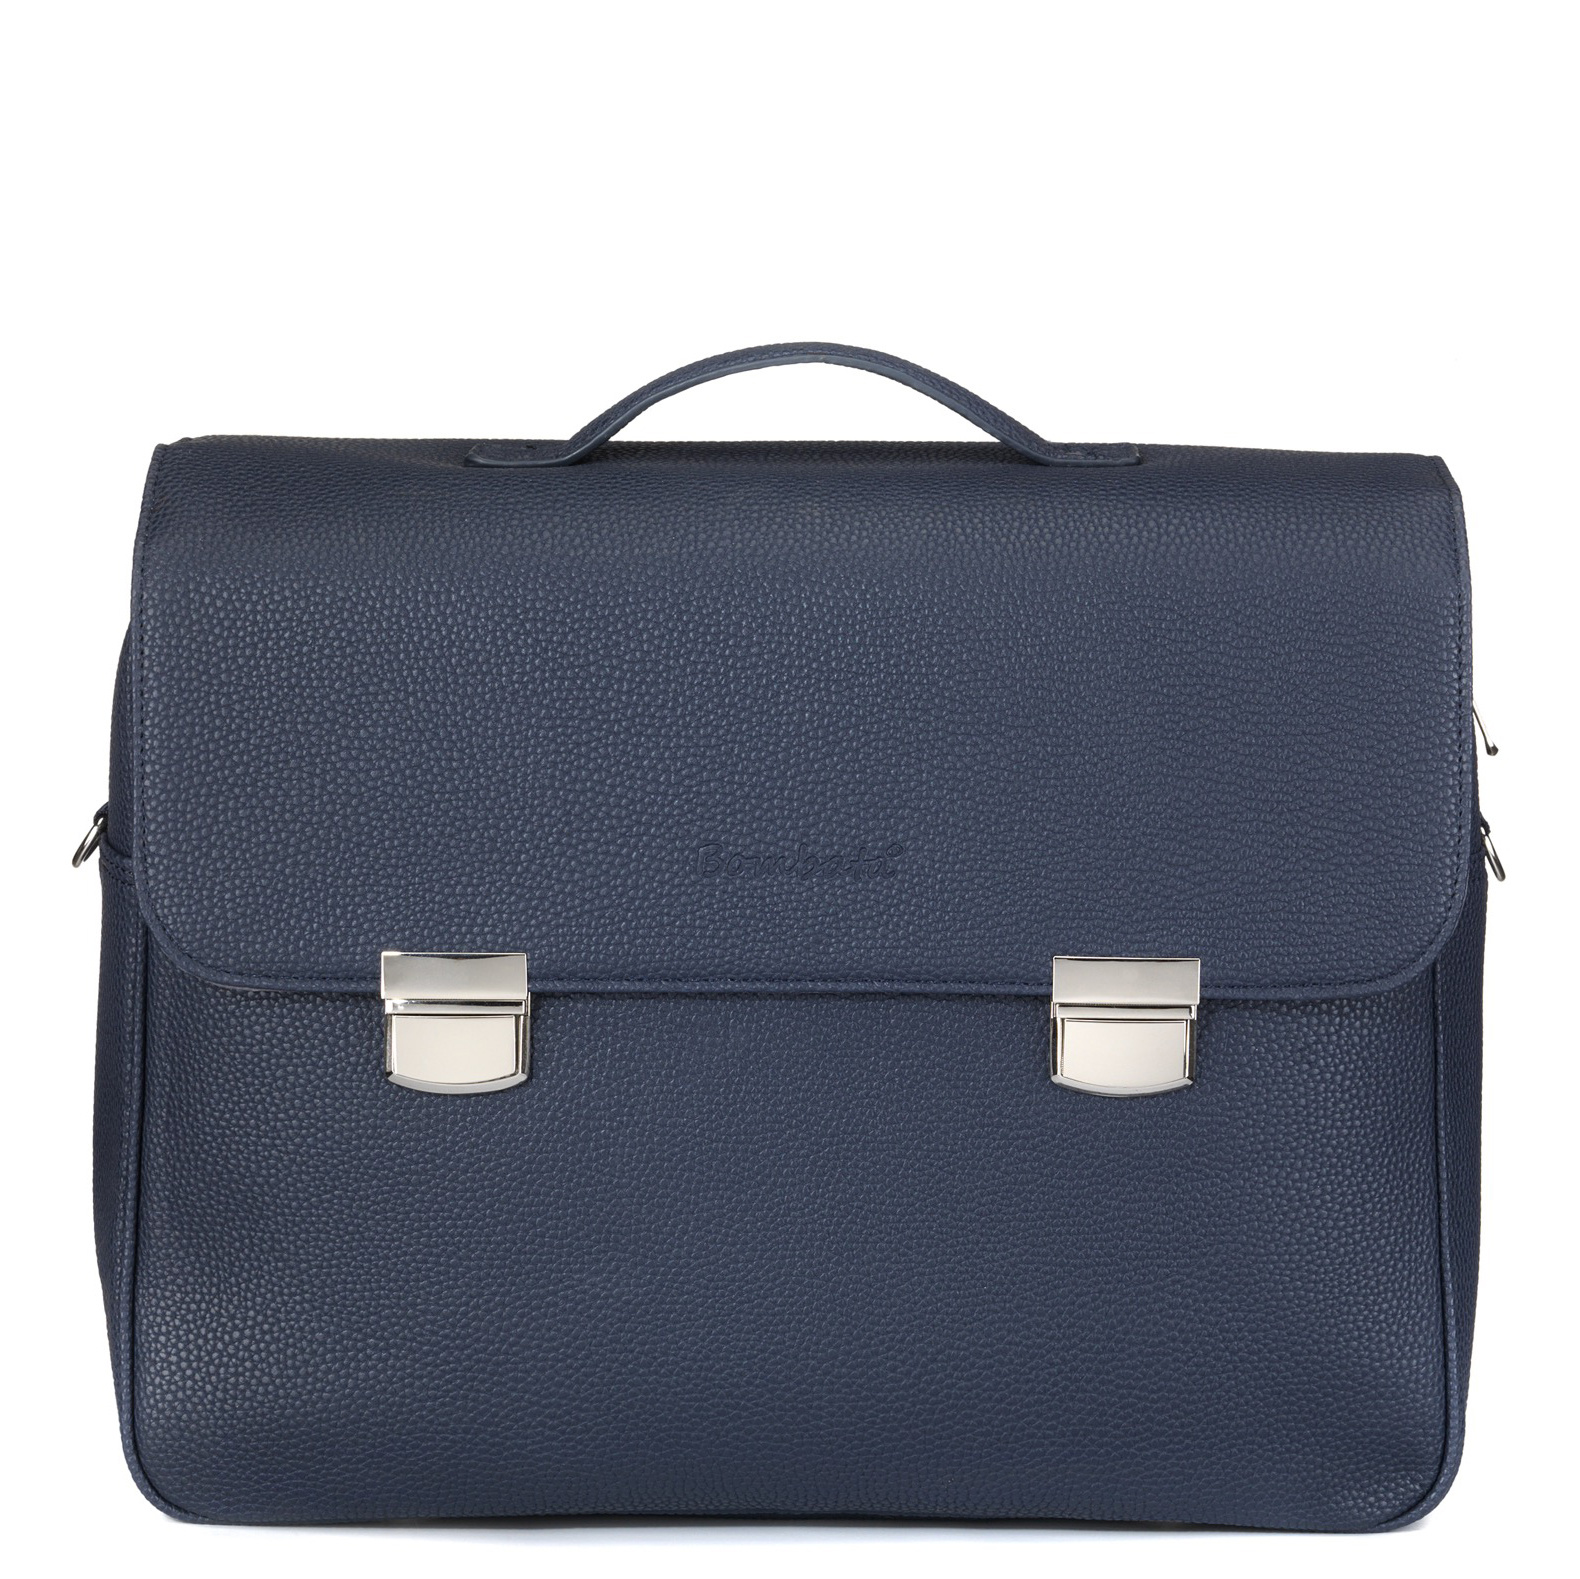 24H Madrid Laptoptas - Blauw